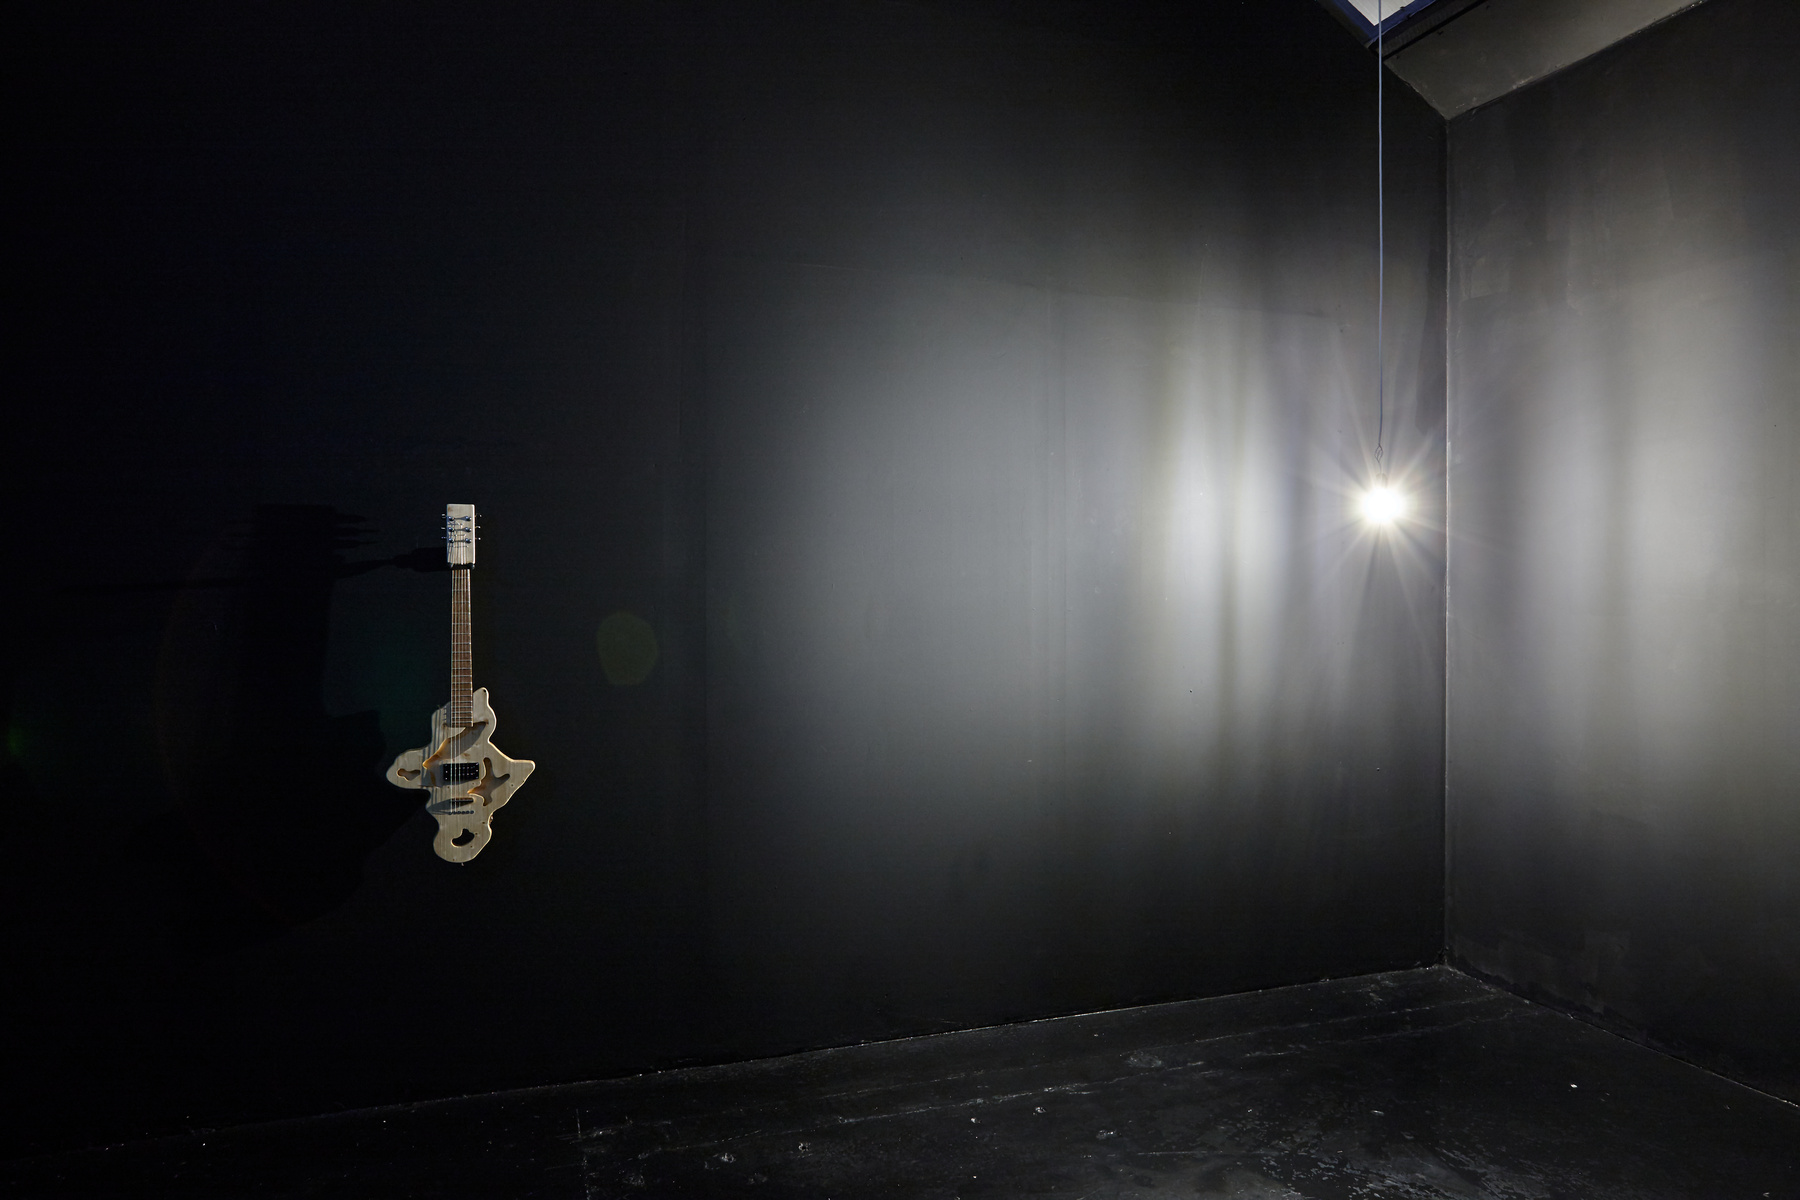 07 Flavio Merlo - November - Ellis King - Installation View VII